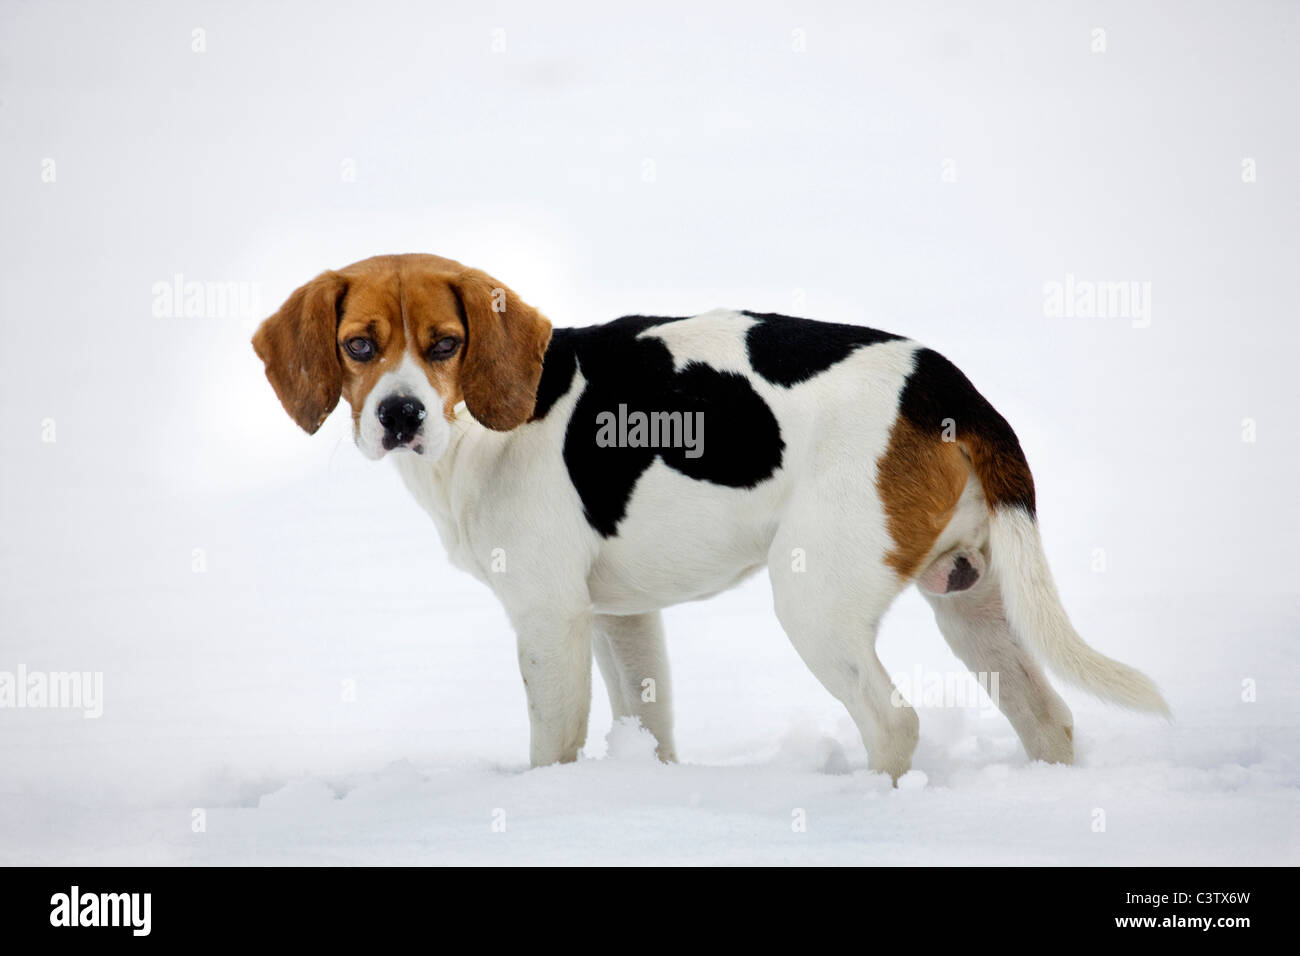 Beagle (Canis lupus familiaris) in the snow in winter - Stock Image